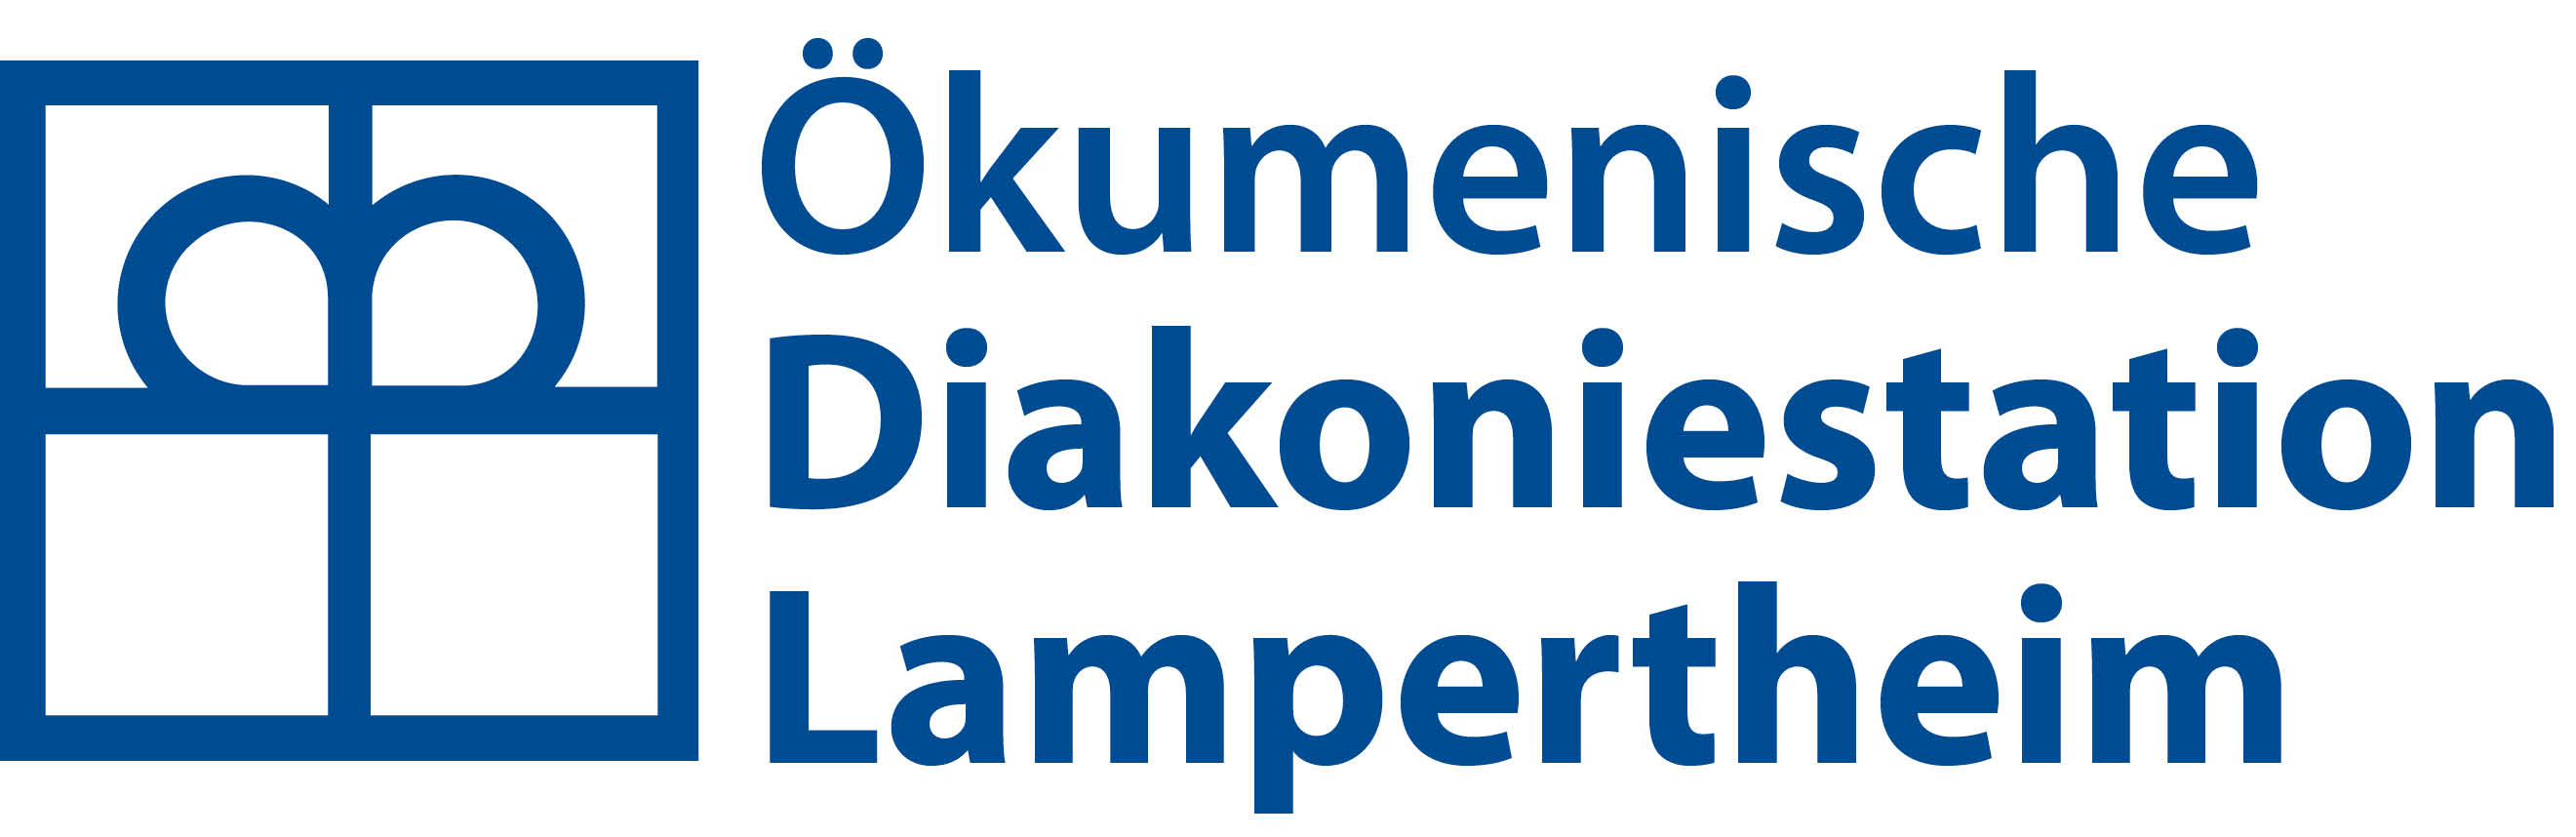 Diakoniestation Lampertheim